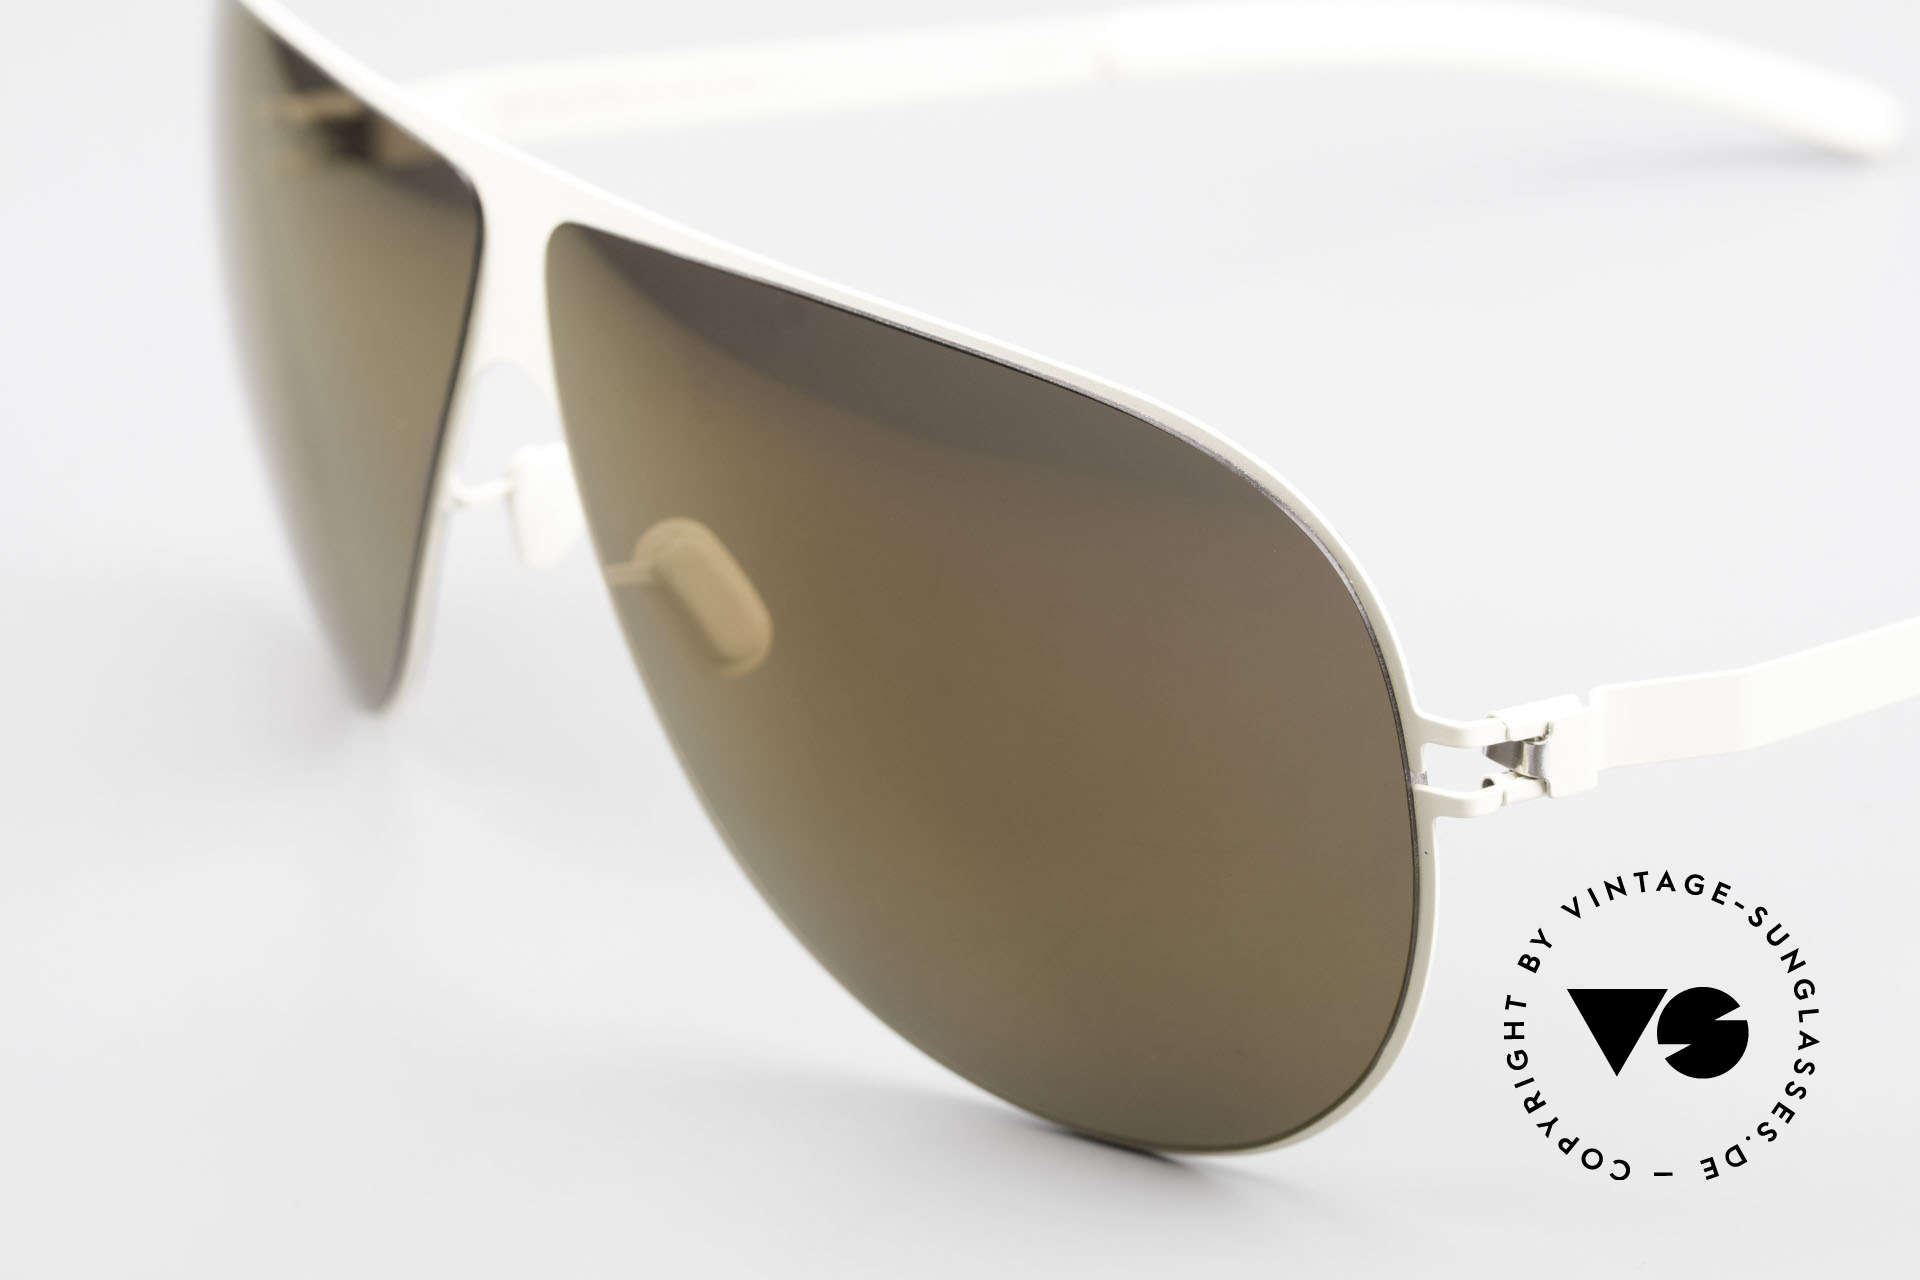 Mykita Elliot Tom Cruise Mykita Sunglasses, worn by Tom Cruise (rare & in high demand, meanwhile), Made for Men